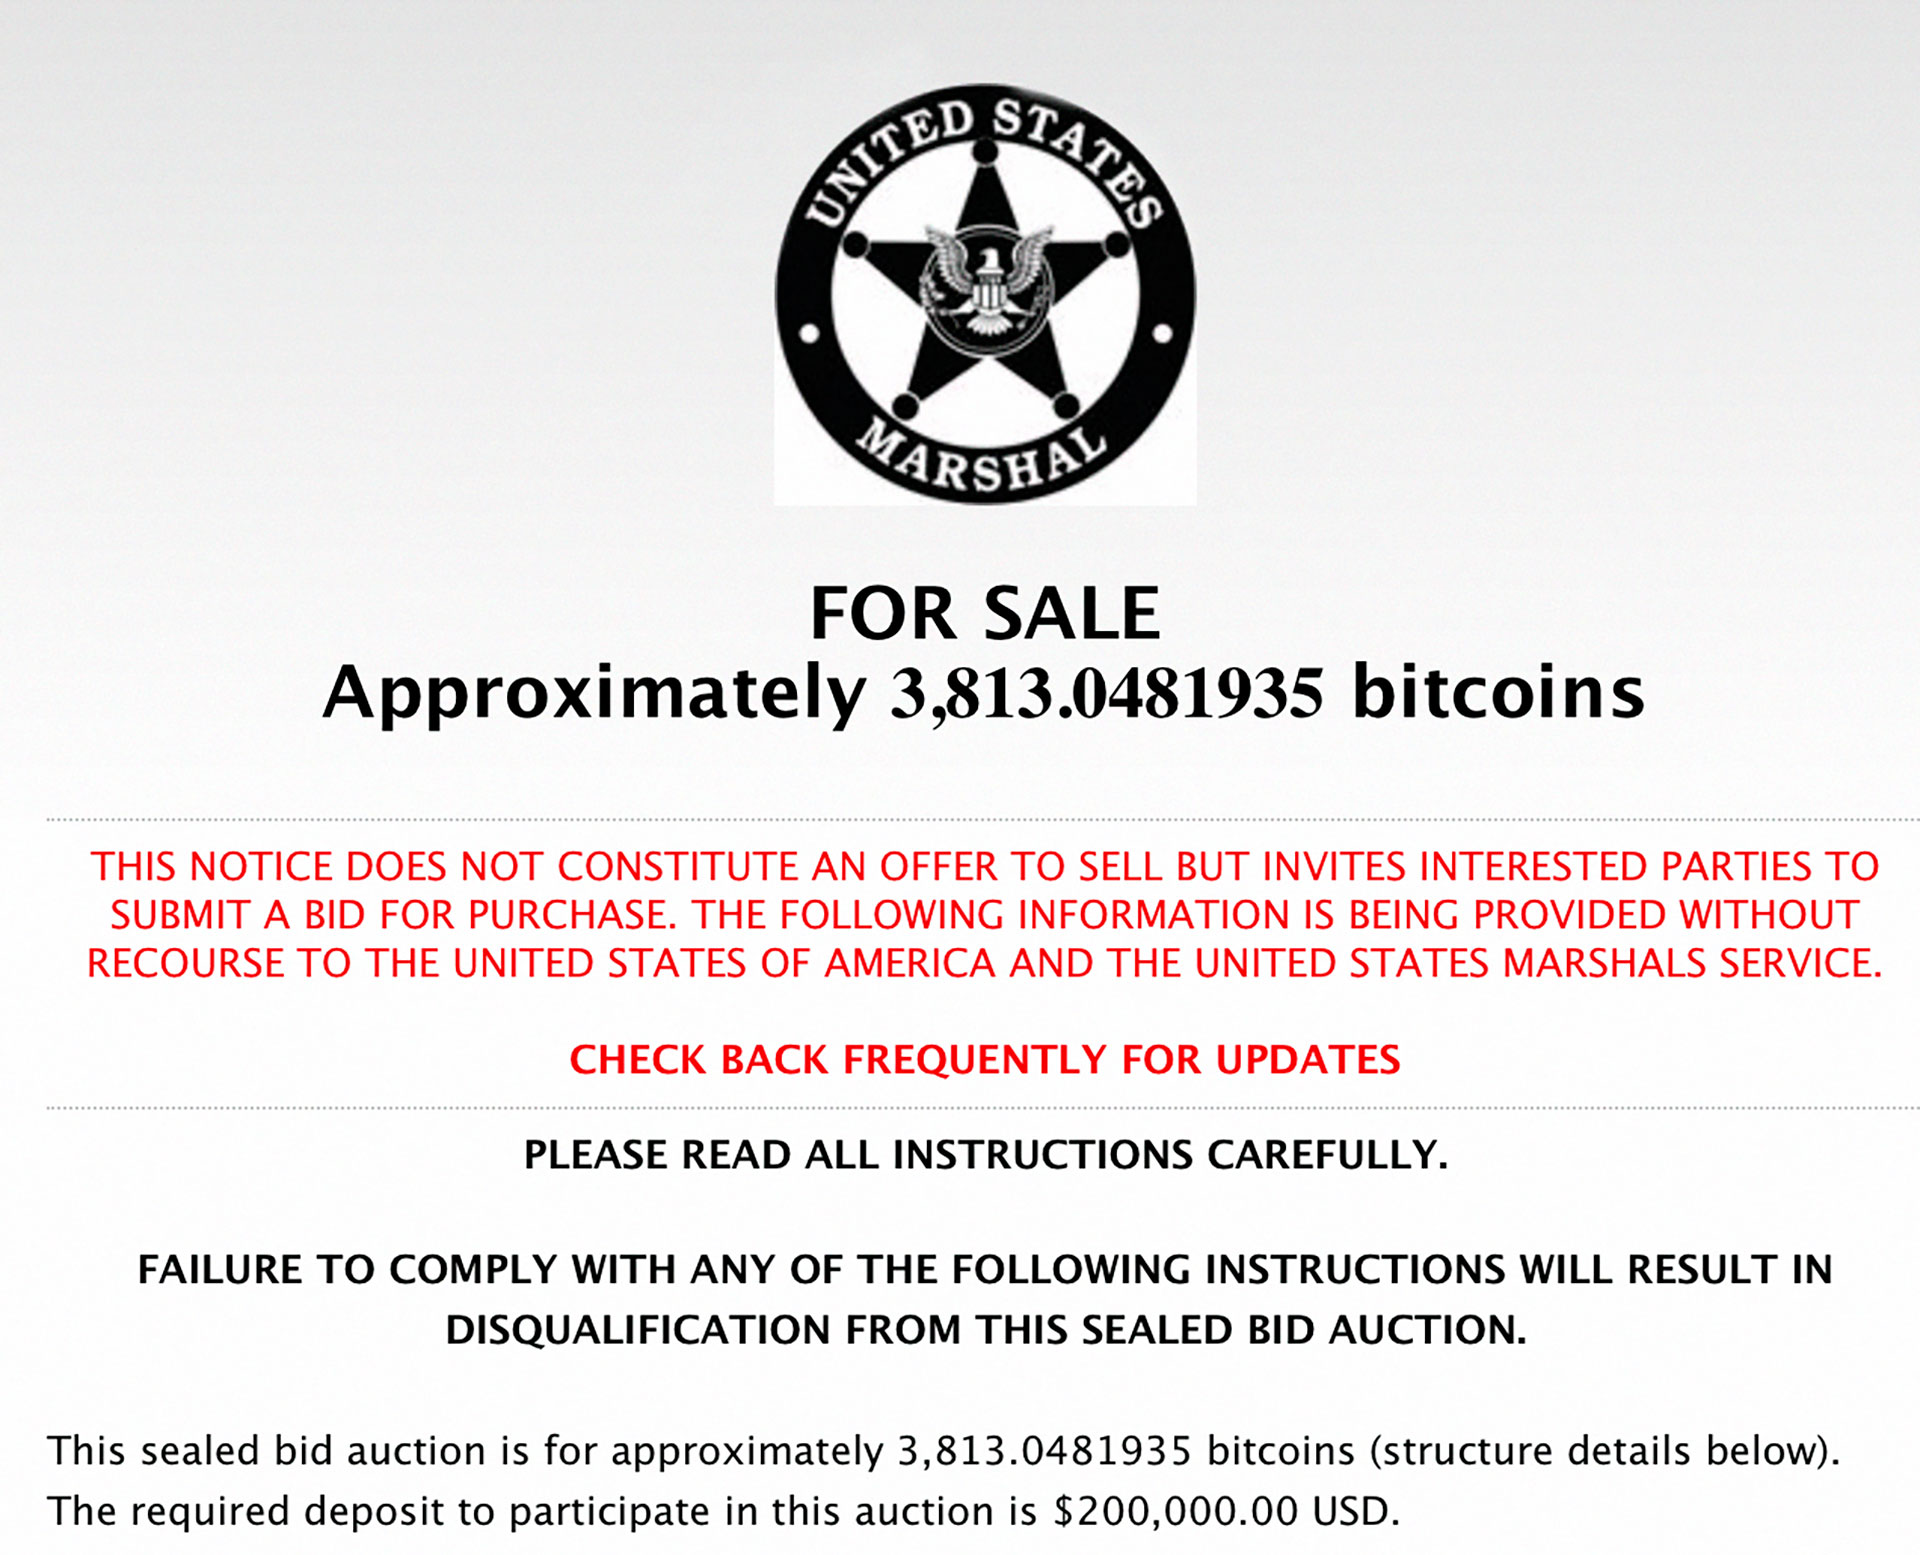 Global Law Enforcement Has Auctioned Massive Amounts of Bitcoin